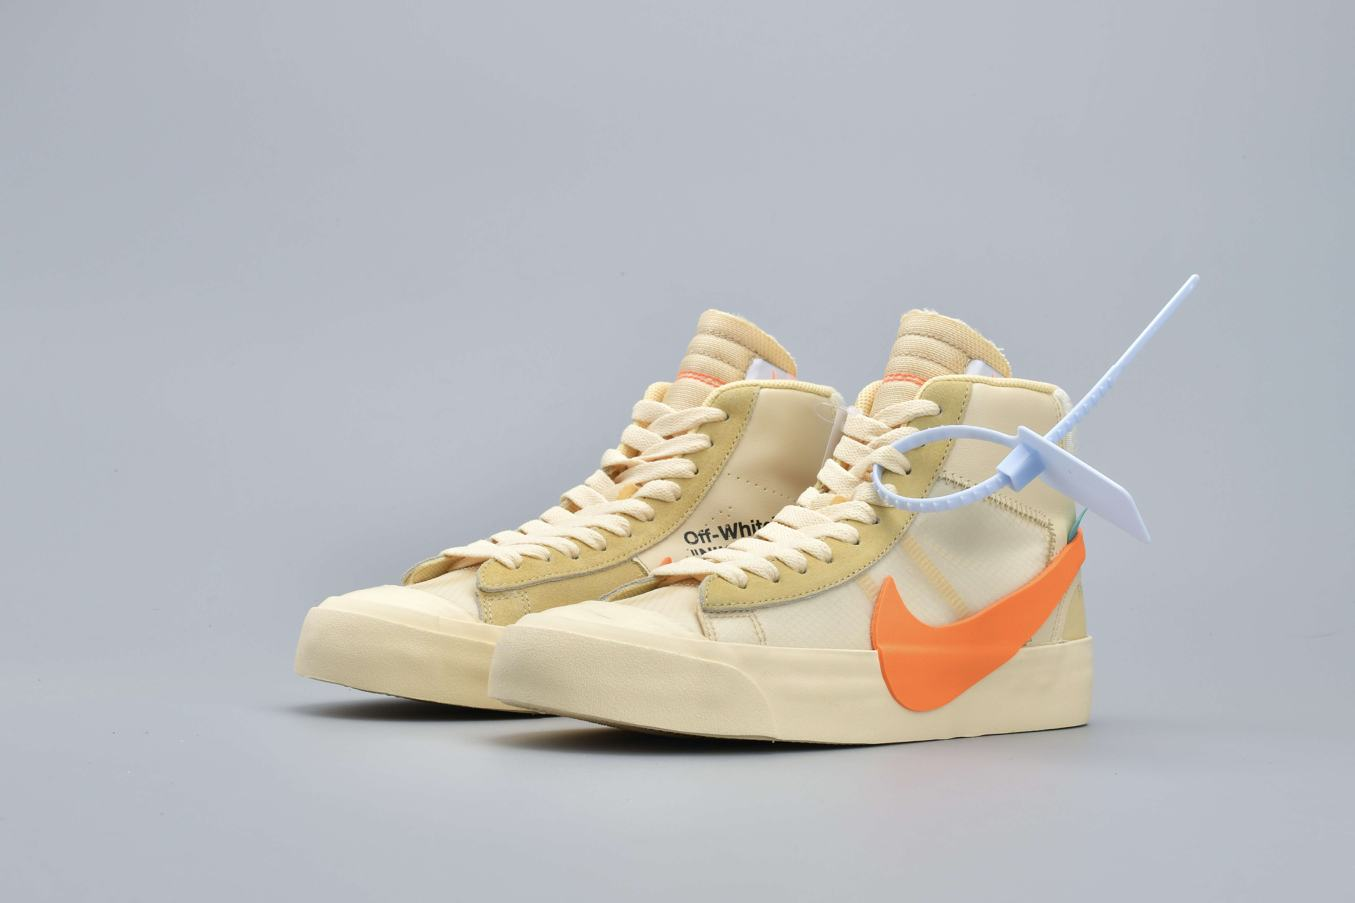 OFF WHITE x Blazer Mid All Hallows Eve 6